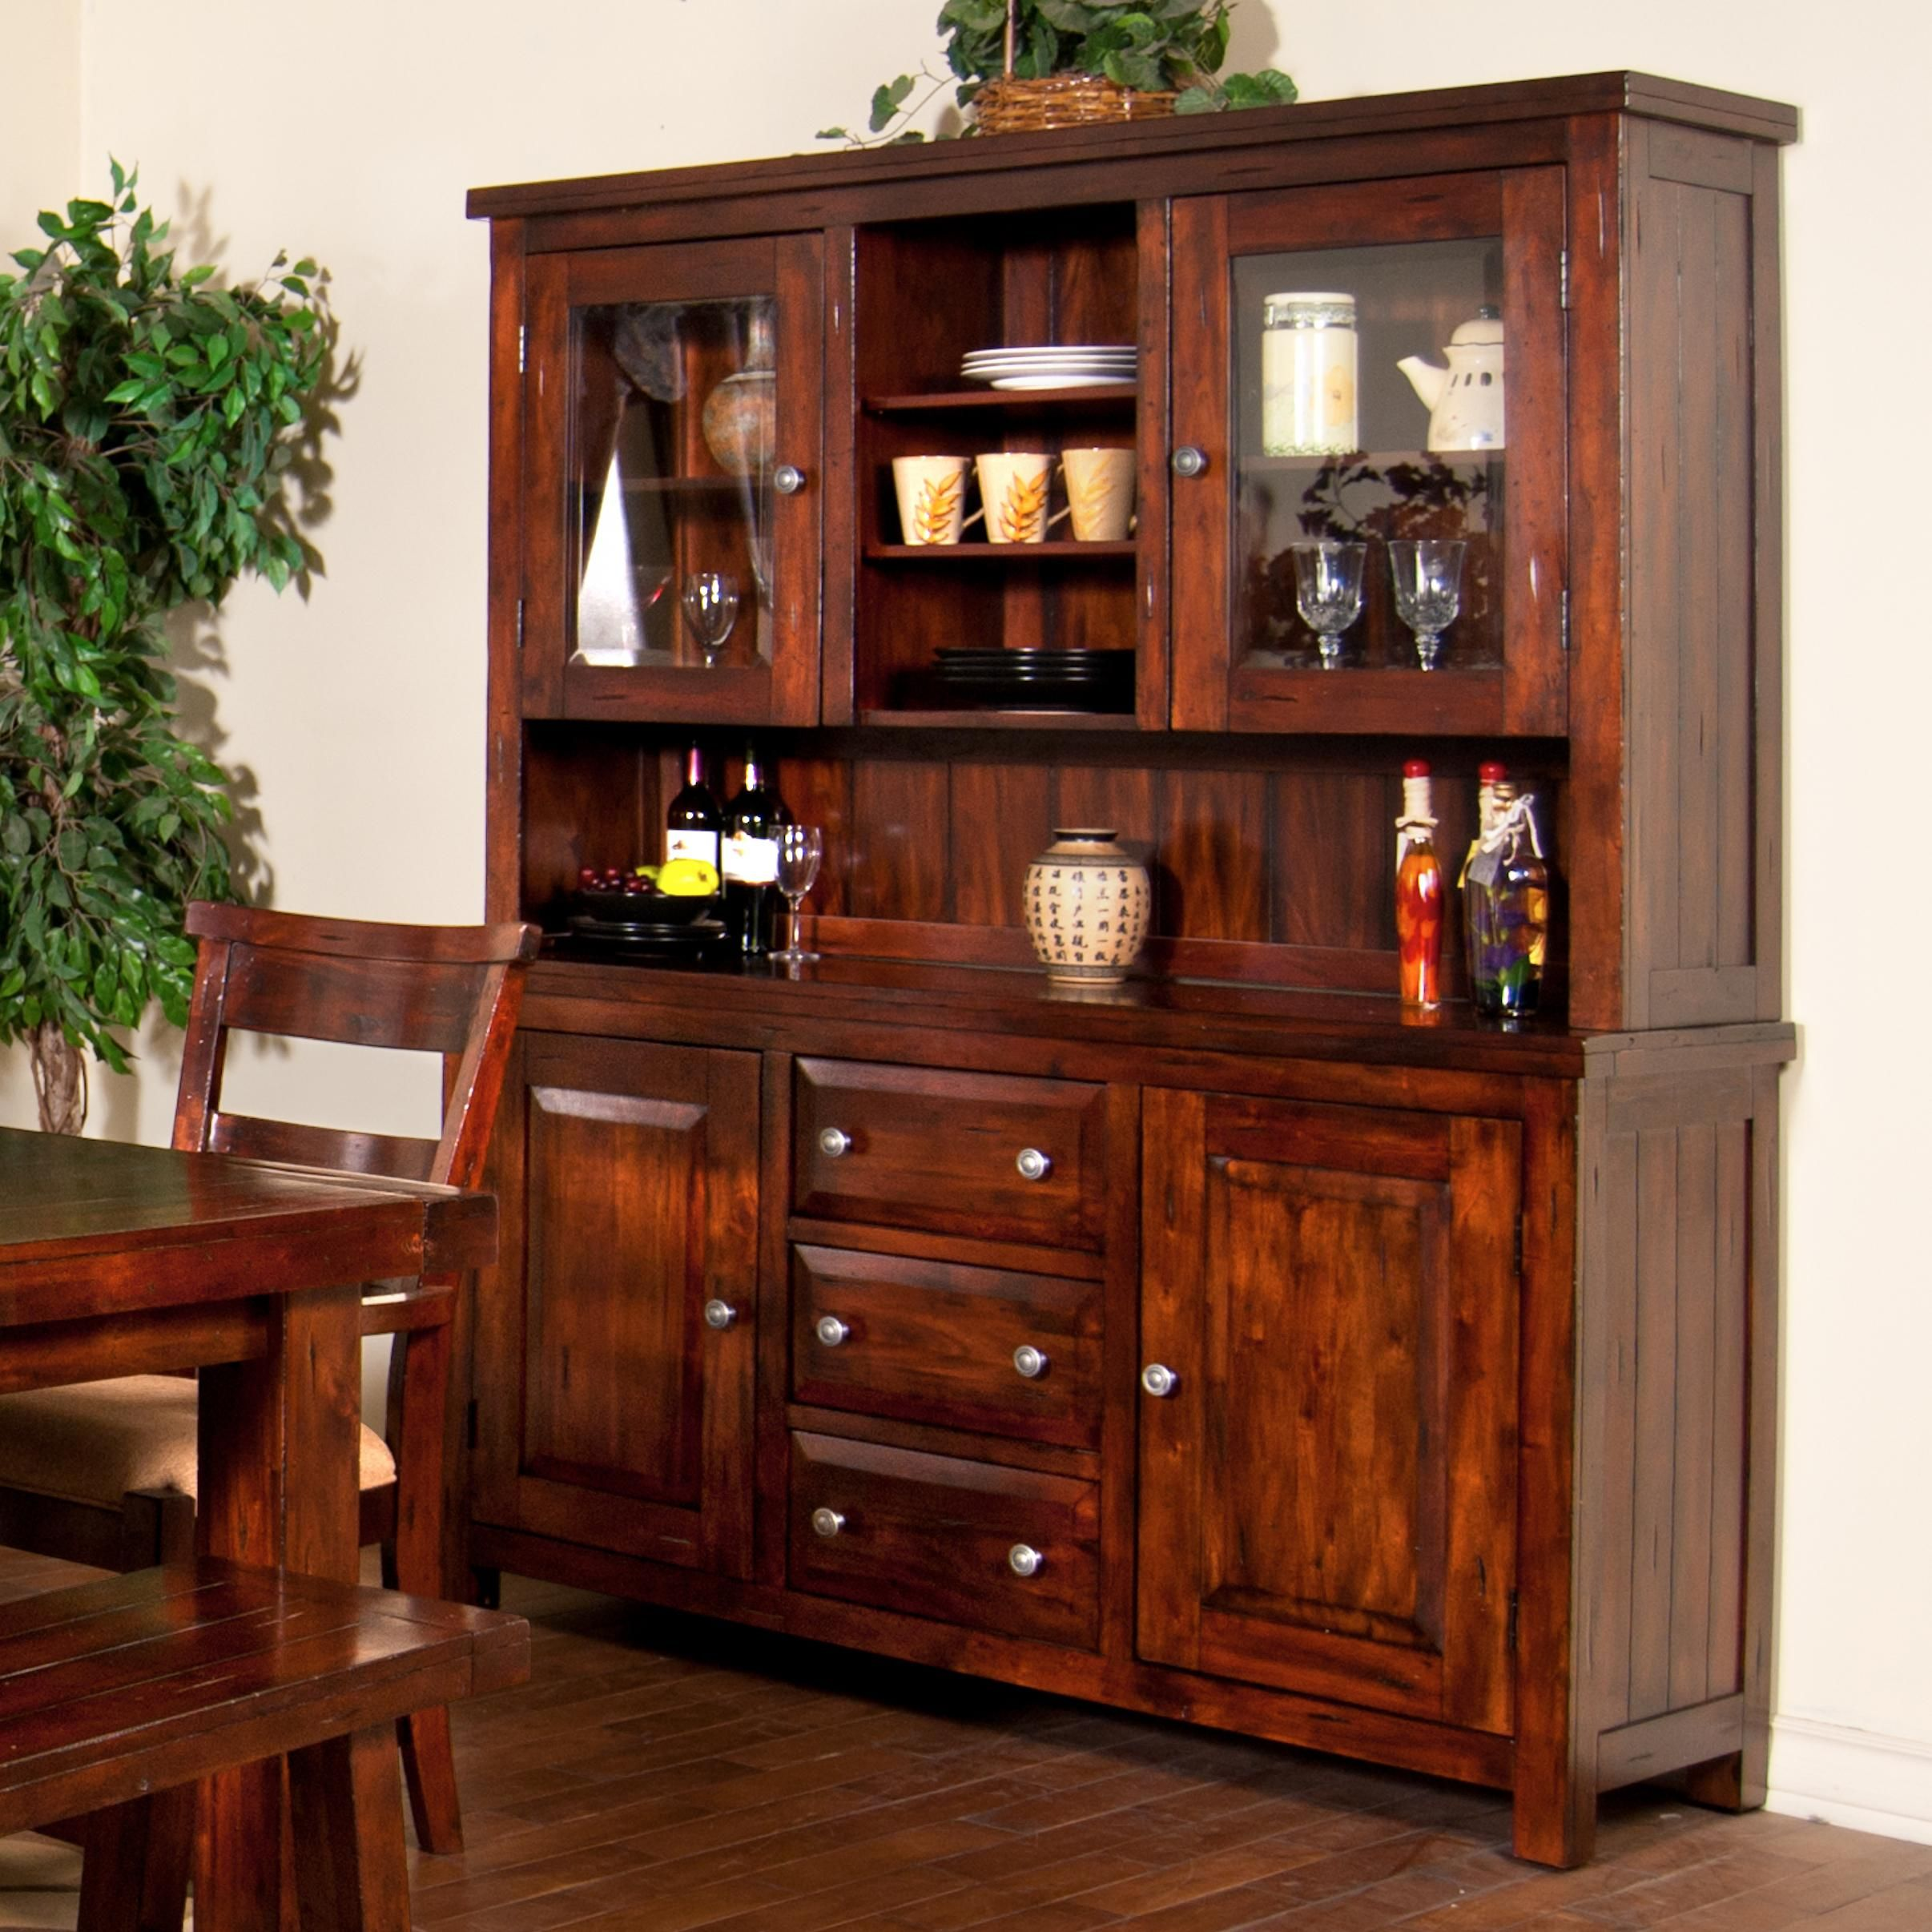 Home China Cabinets And Hutches Dining Cabinet Dining Room Design